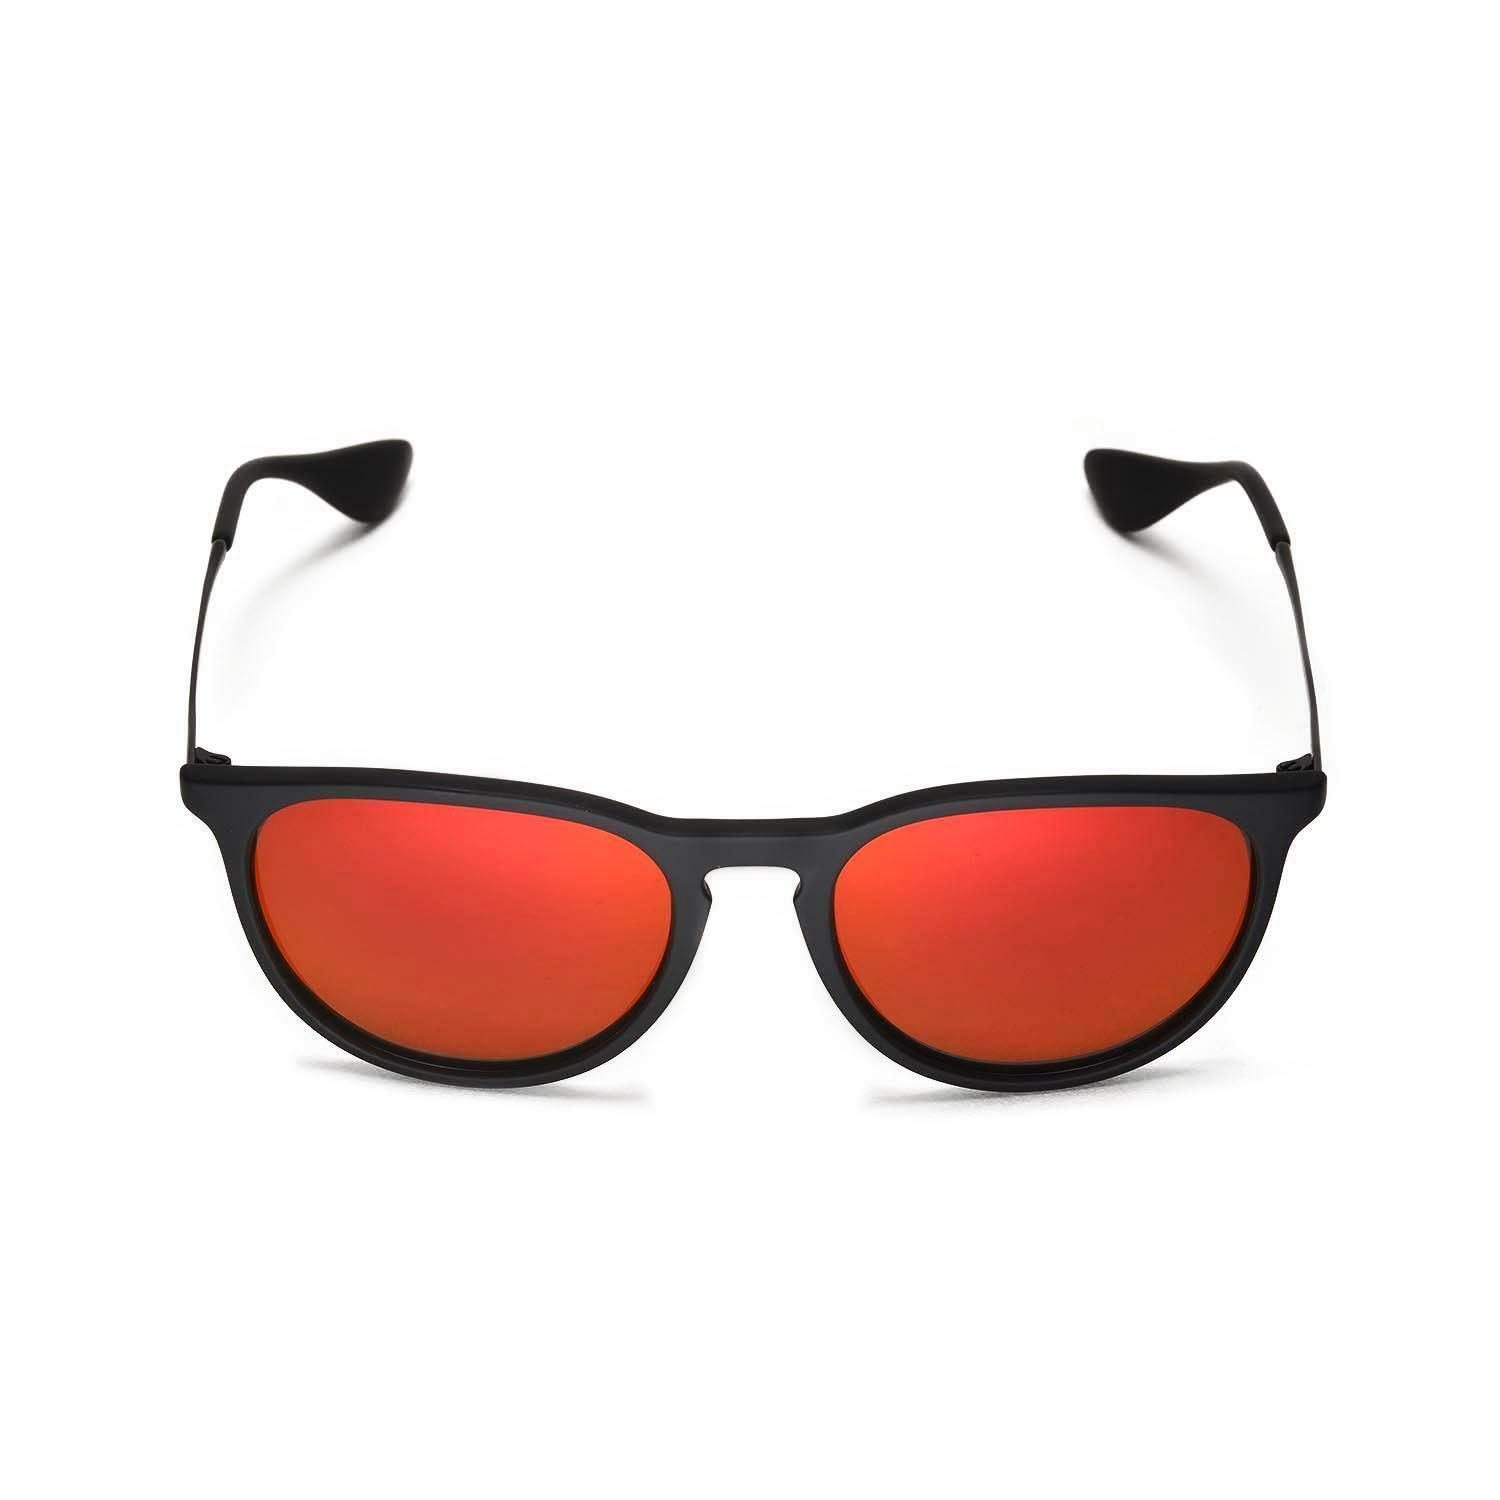 6b6ae1e3722 Walleva Polarized Fire Red Lenses for Ray-ban Erika Rb4171 54m Sunglasses  for sale online